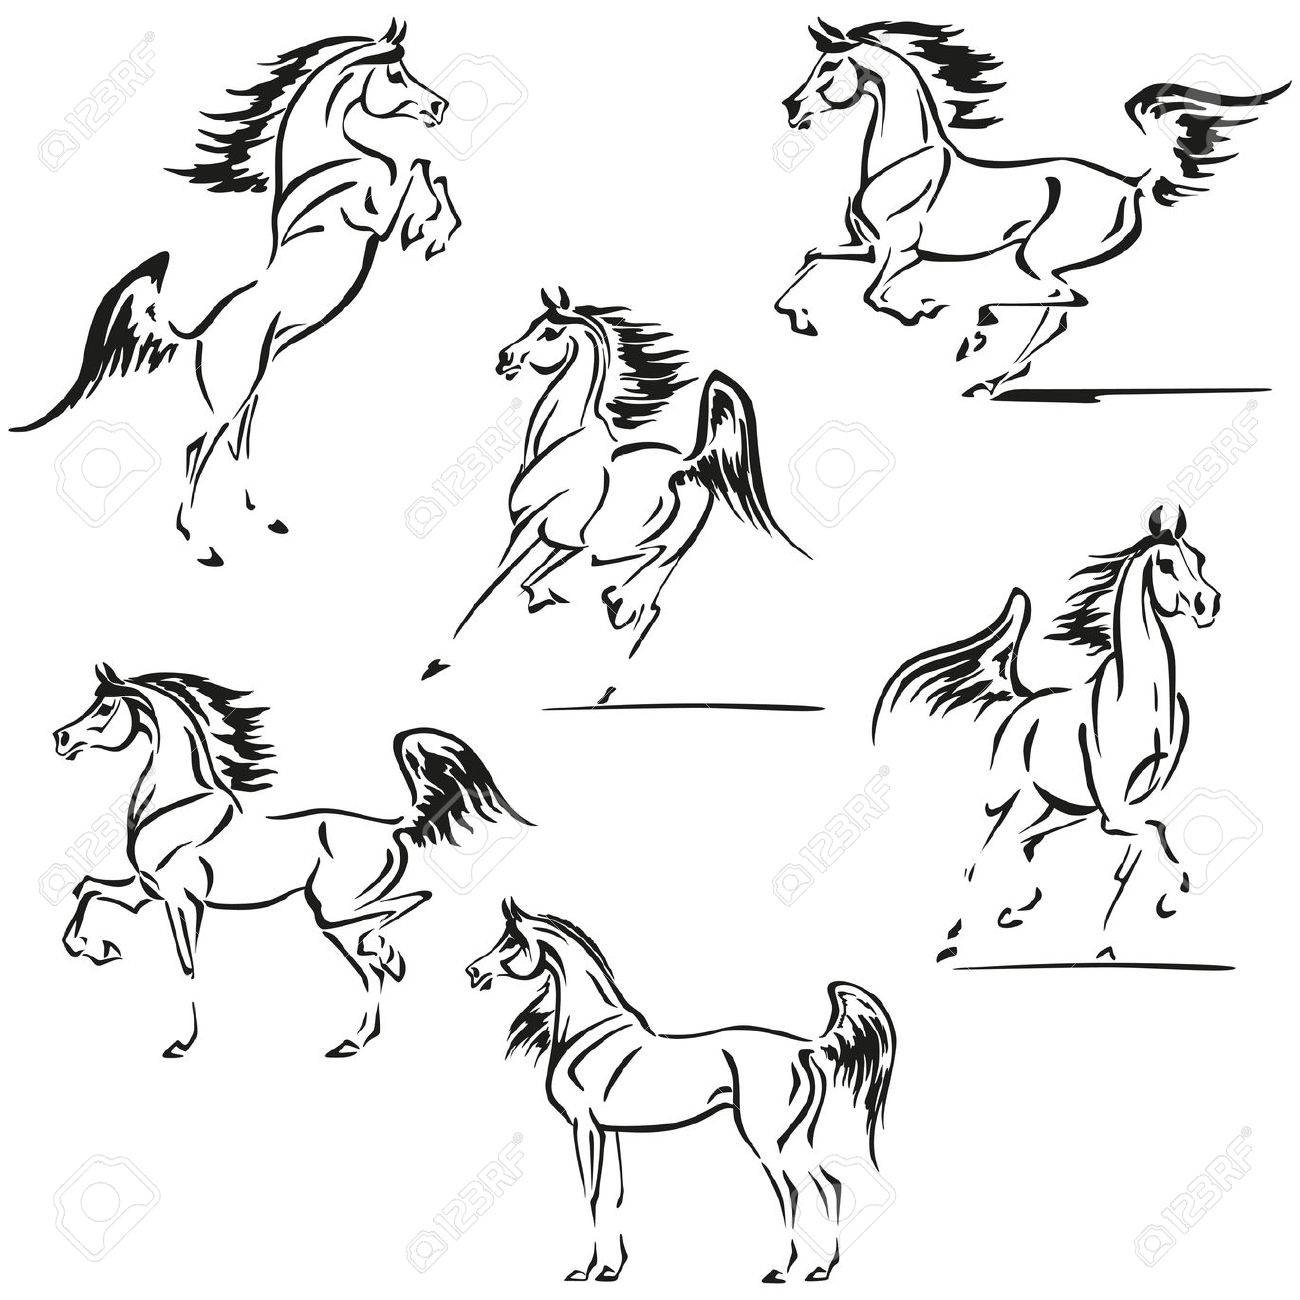 Simplified Silhouettes Of Arabian Horses Royalty Free Cliparts Vectors And Stock Illustration Image 42834337